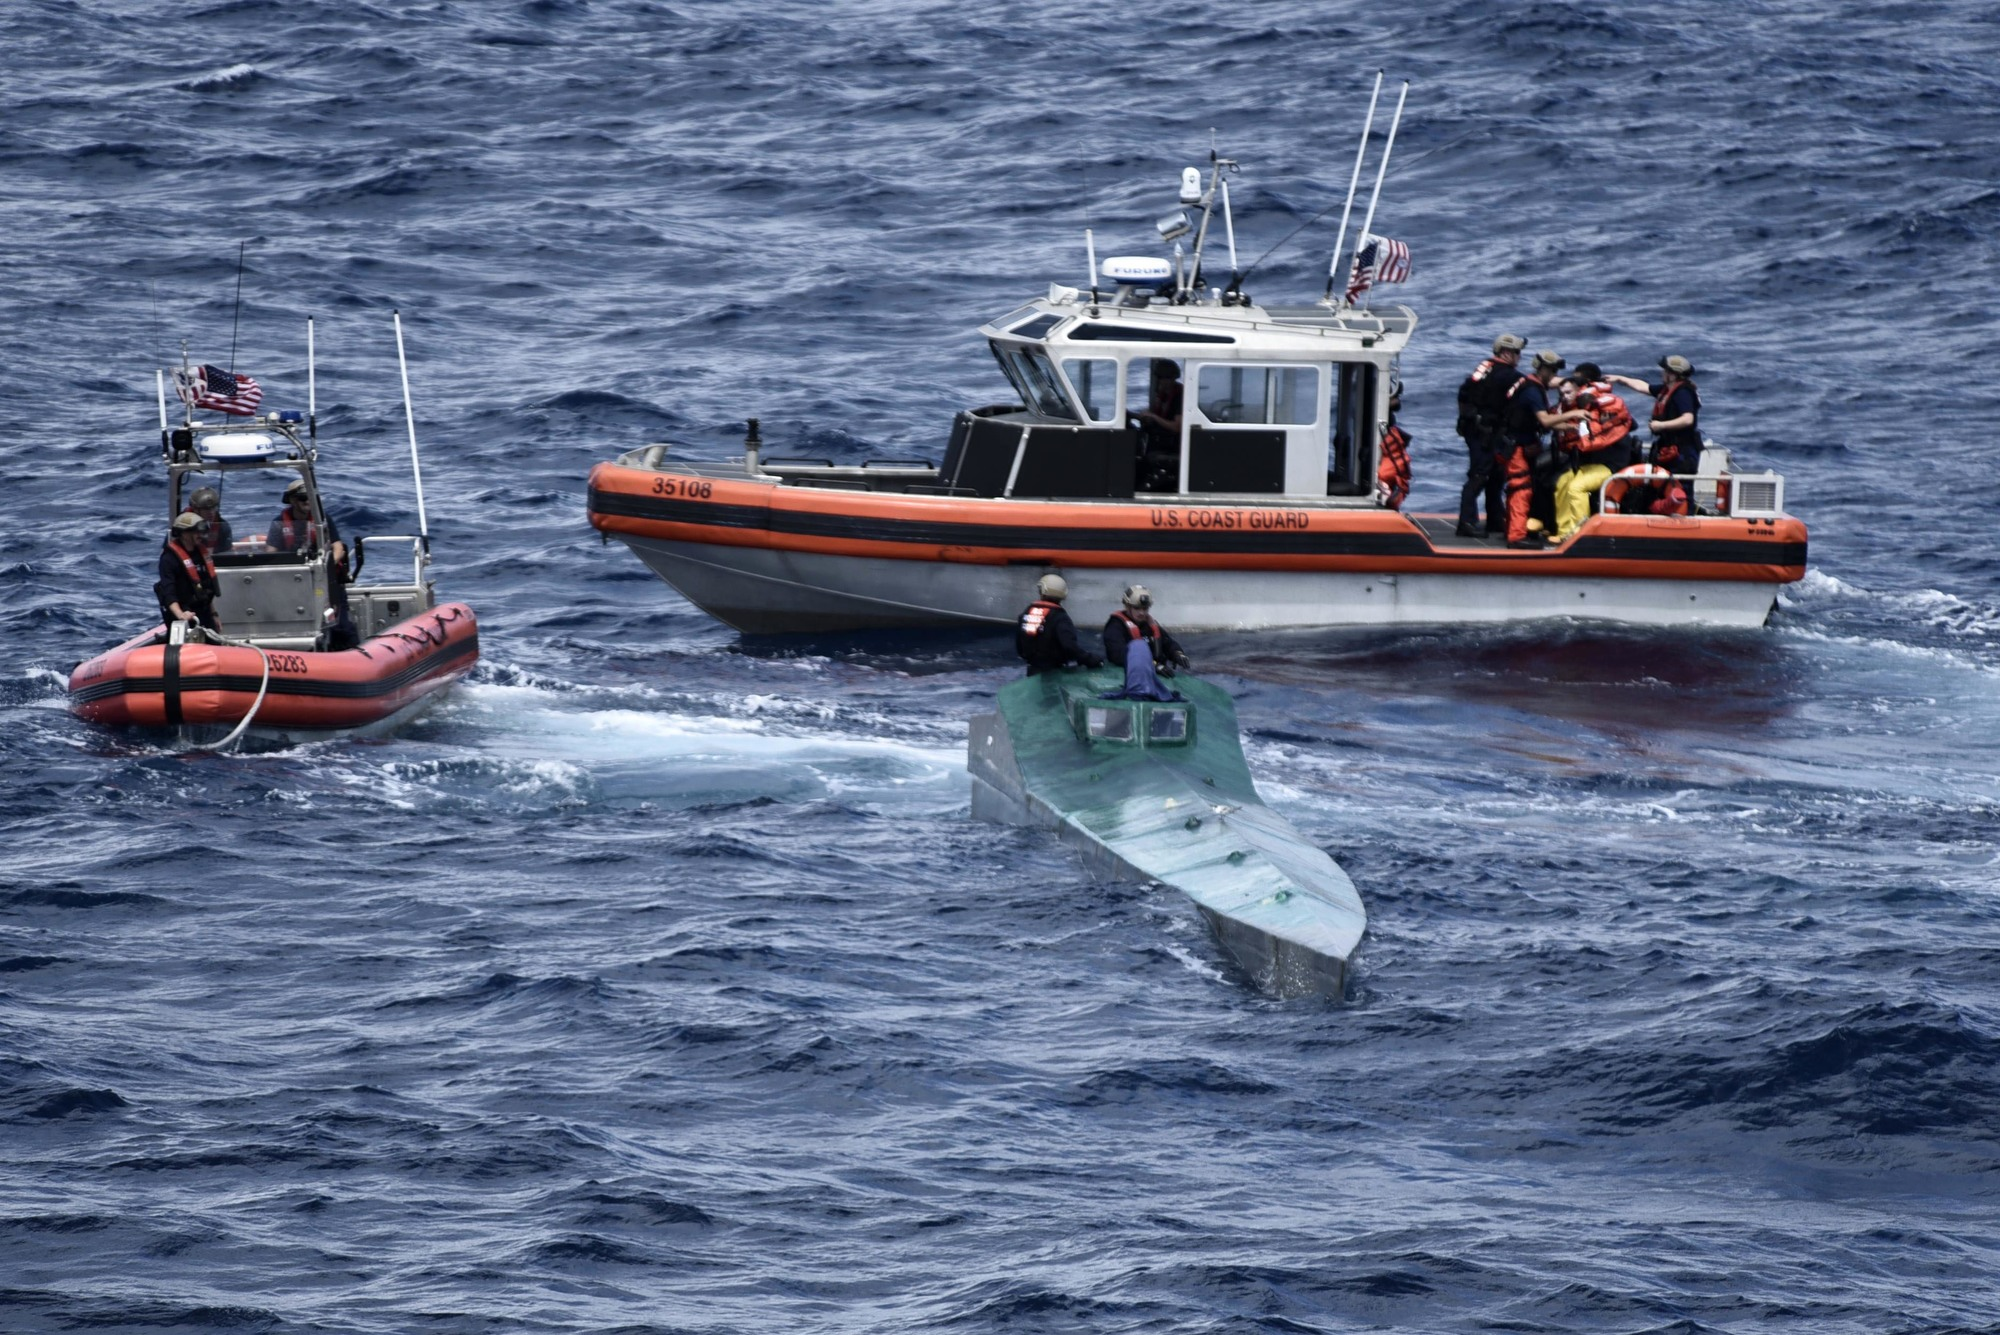 Coast Guard Cutter Bertholf crews interdict suspected drug-smuggling vessel in Eastern Pacific Ocean